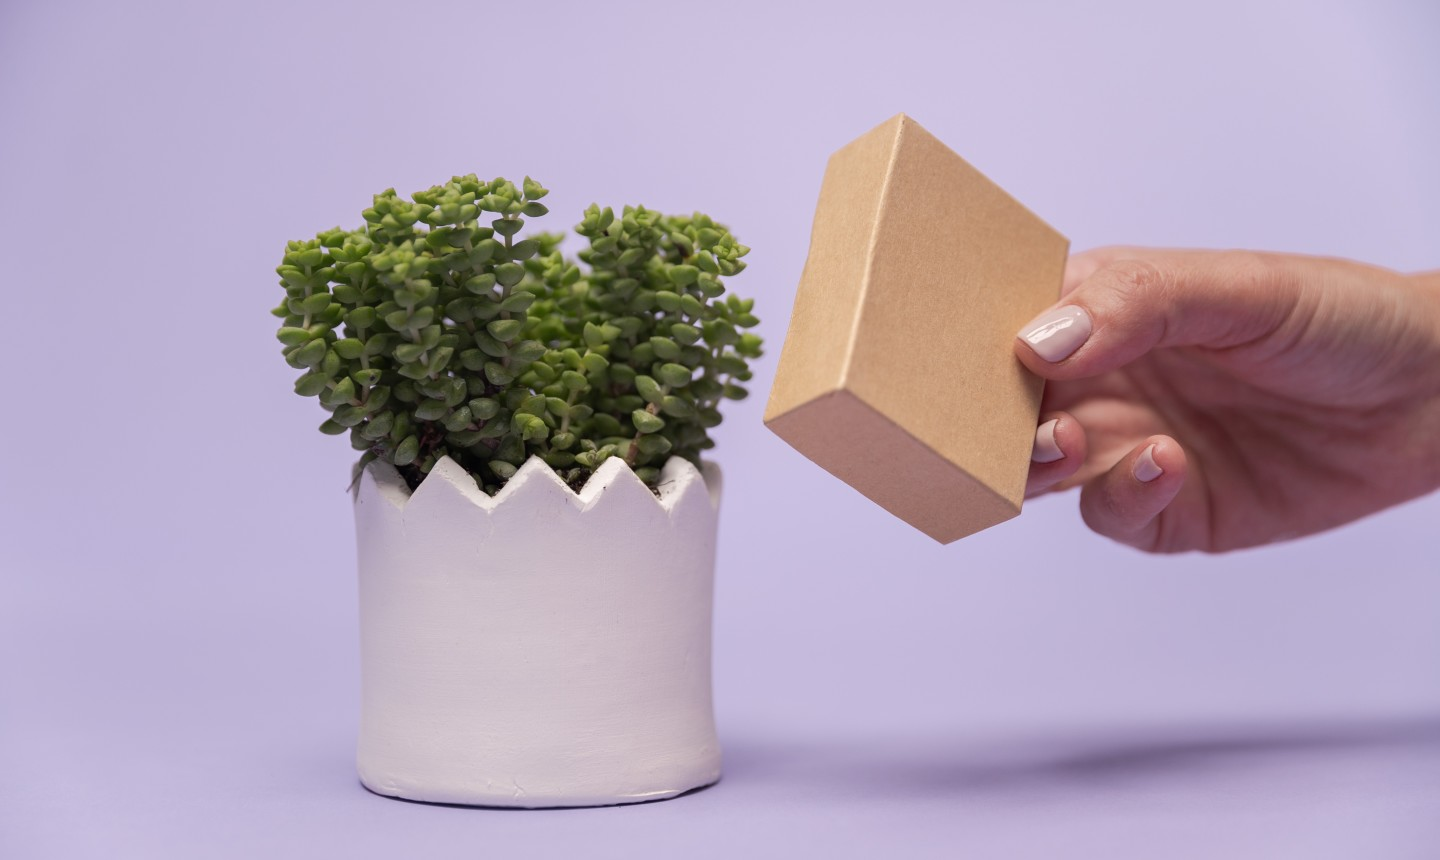 Creating an effect on the clay with a box